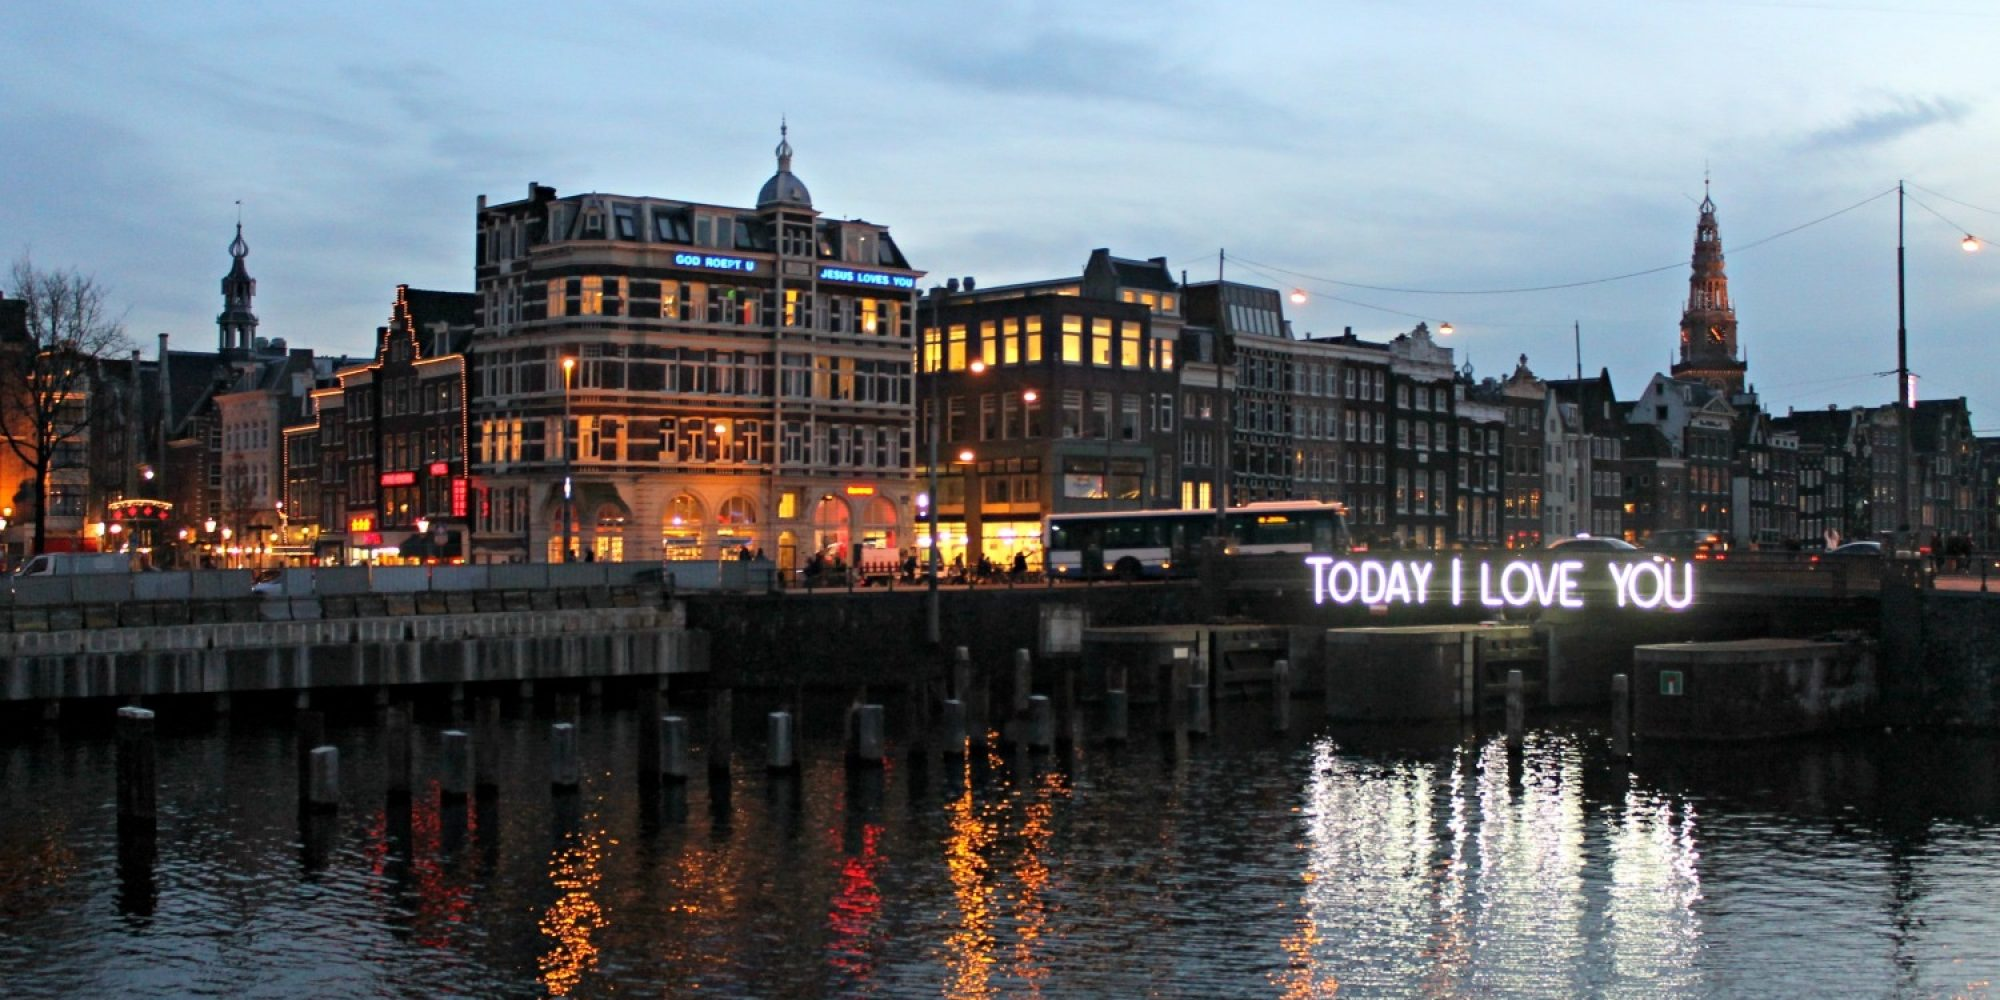 Today-I-love-you-Amsterdam